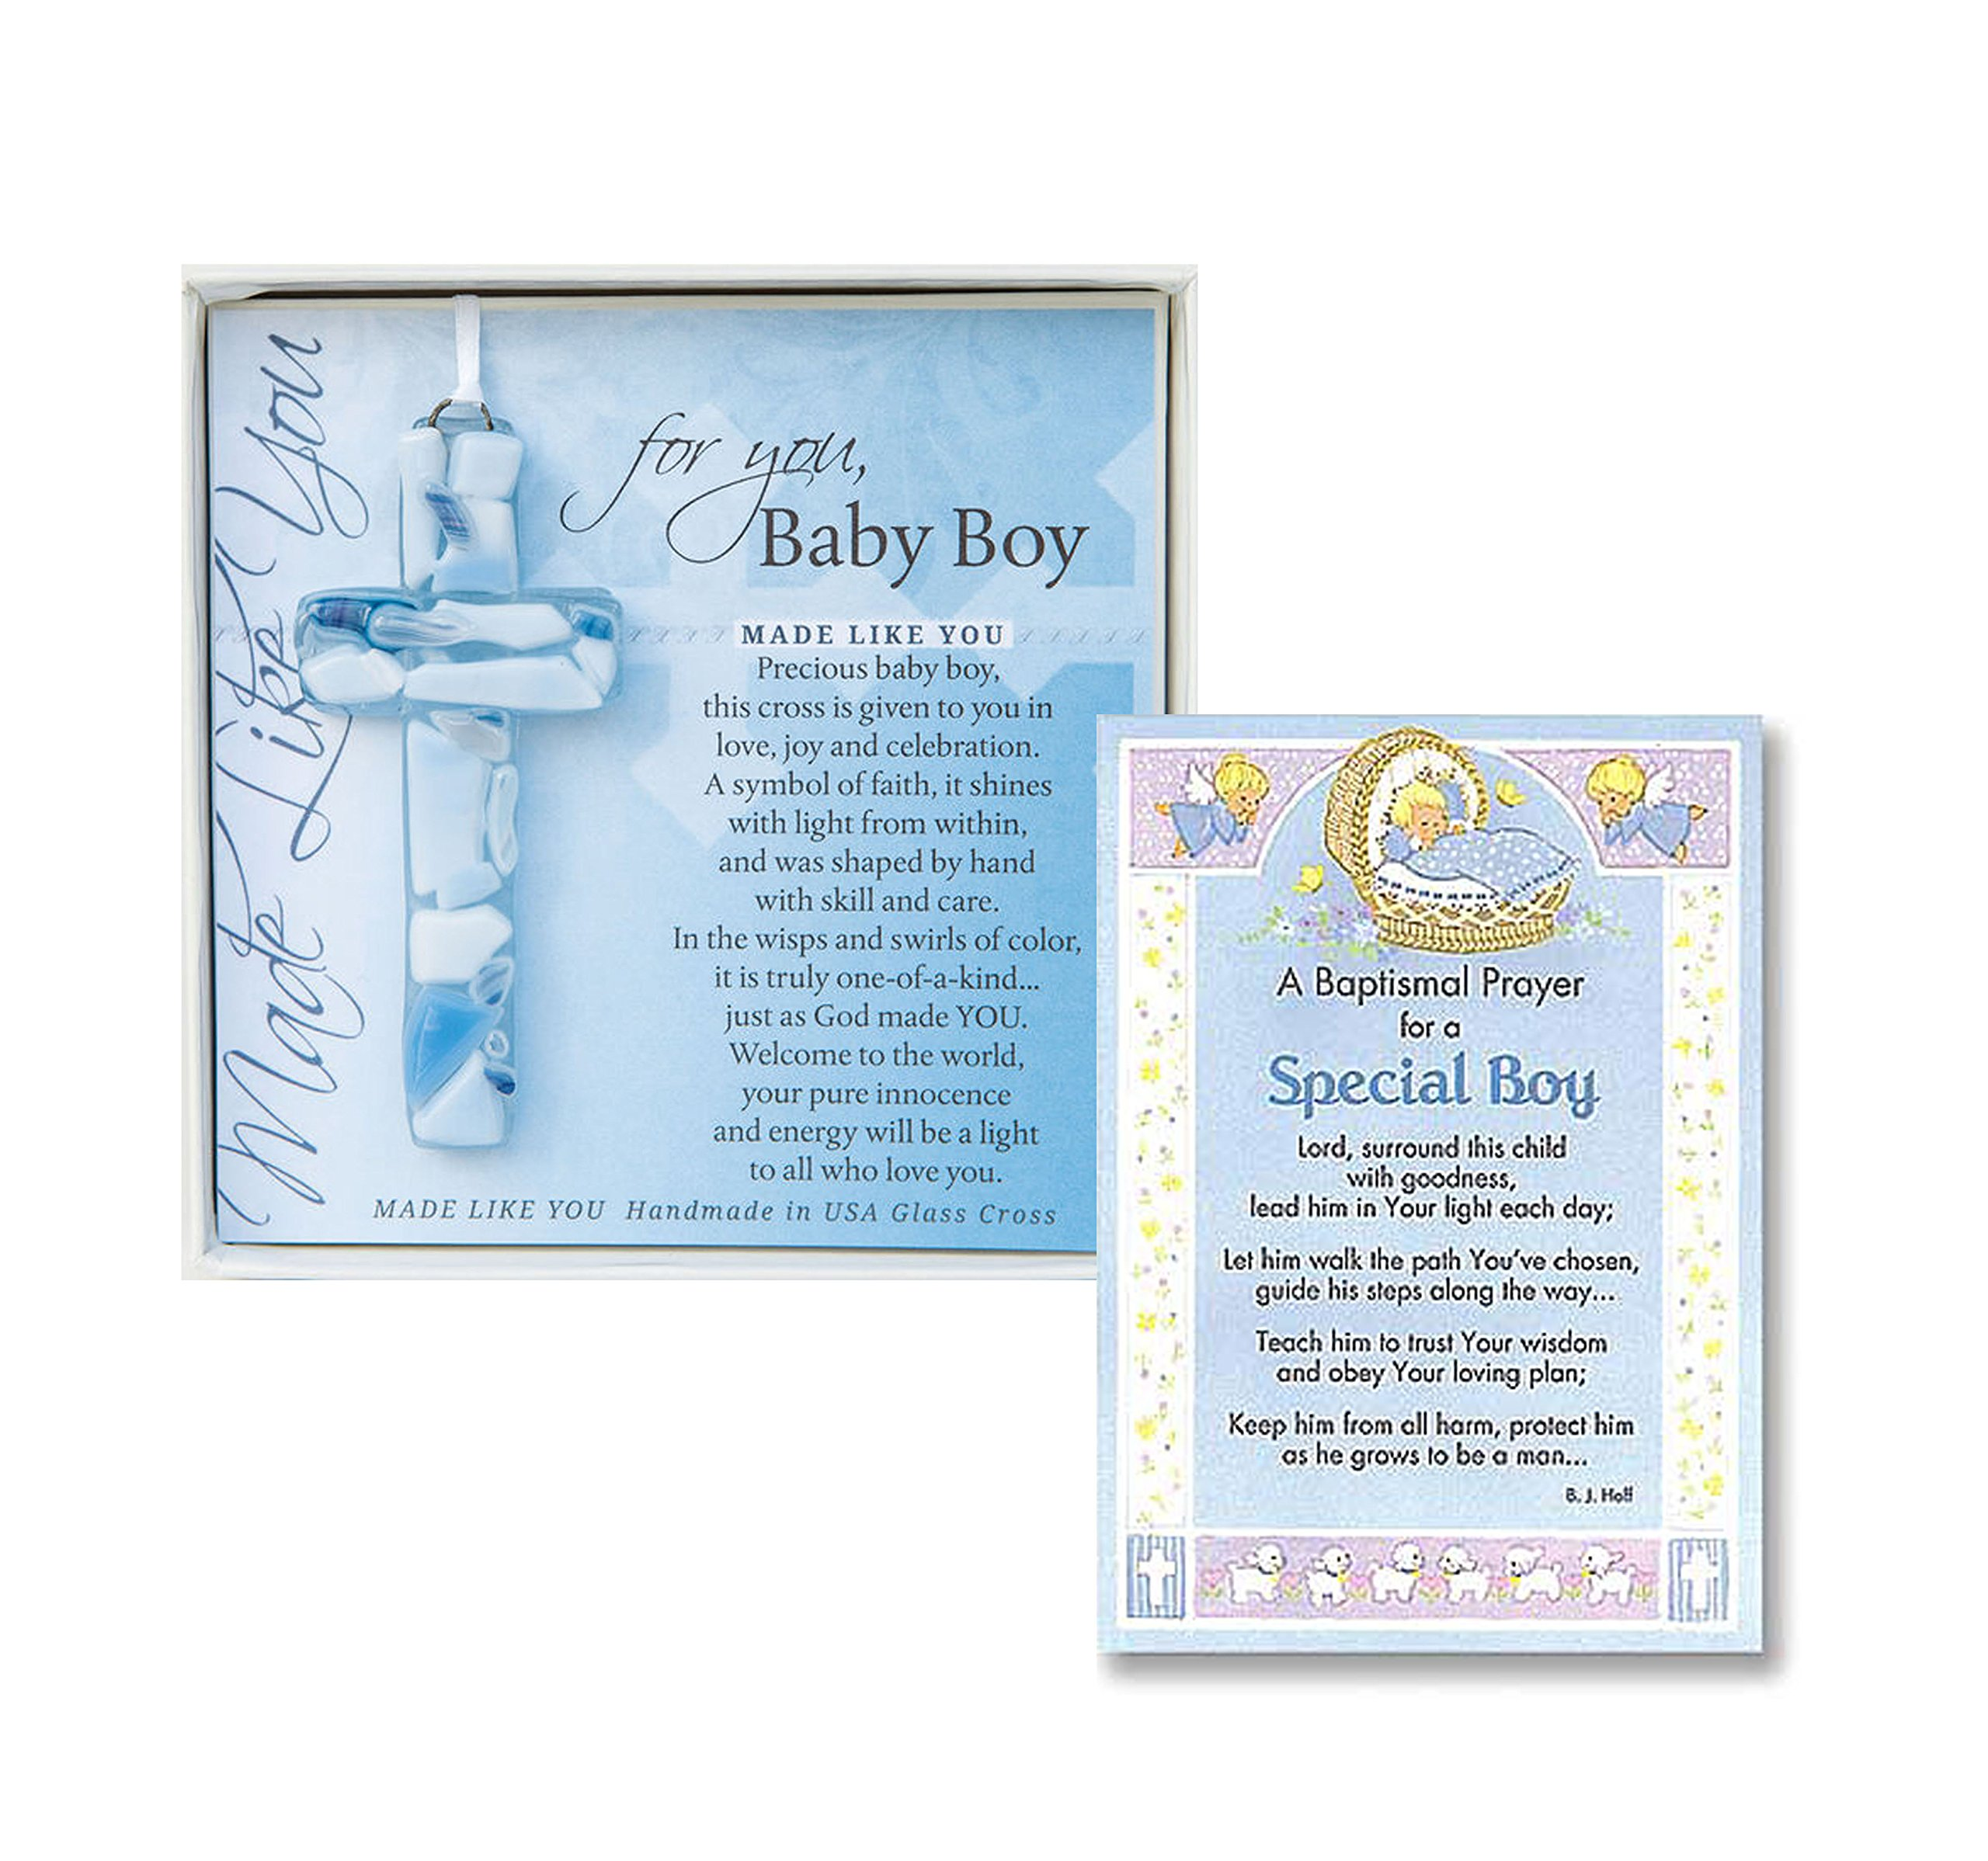 Baptism Wall Cross Christening Gifts For Boys Gift Set Handmade in the USA Glass Cross for Baby Boys and a Baptism Prayer Card Great Baptism Gifts for Boys